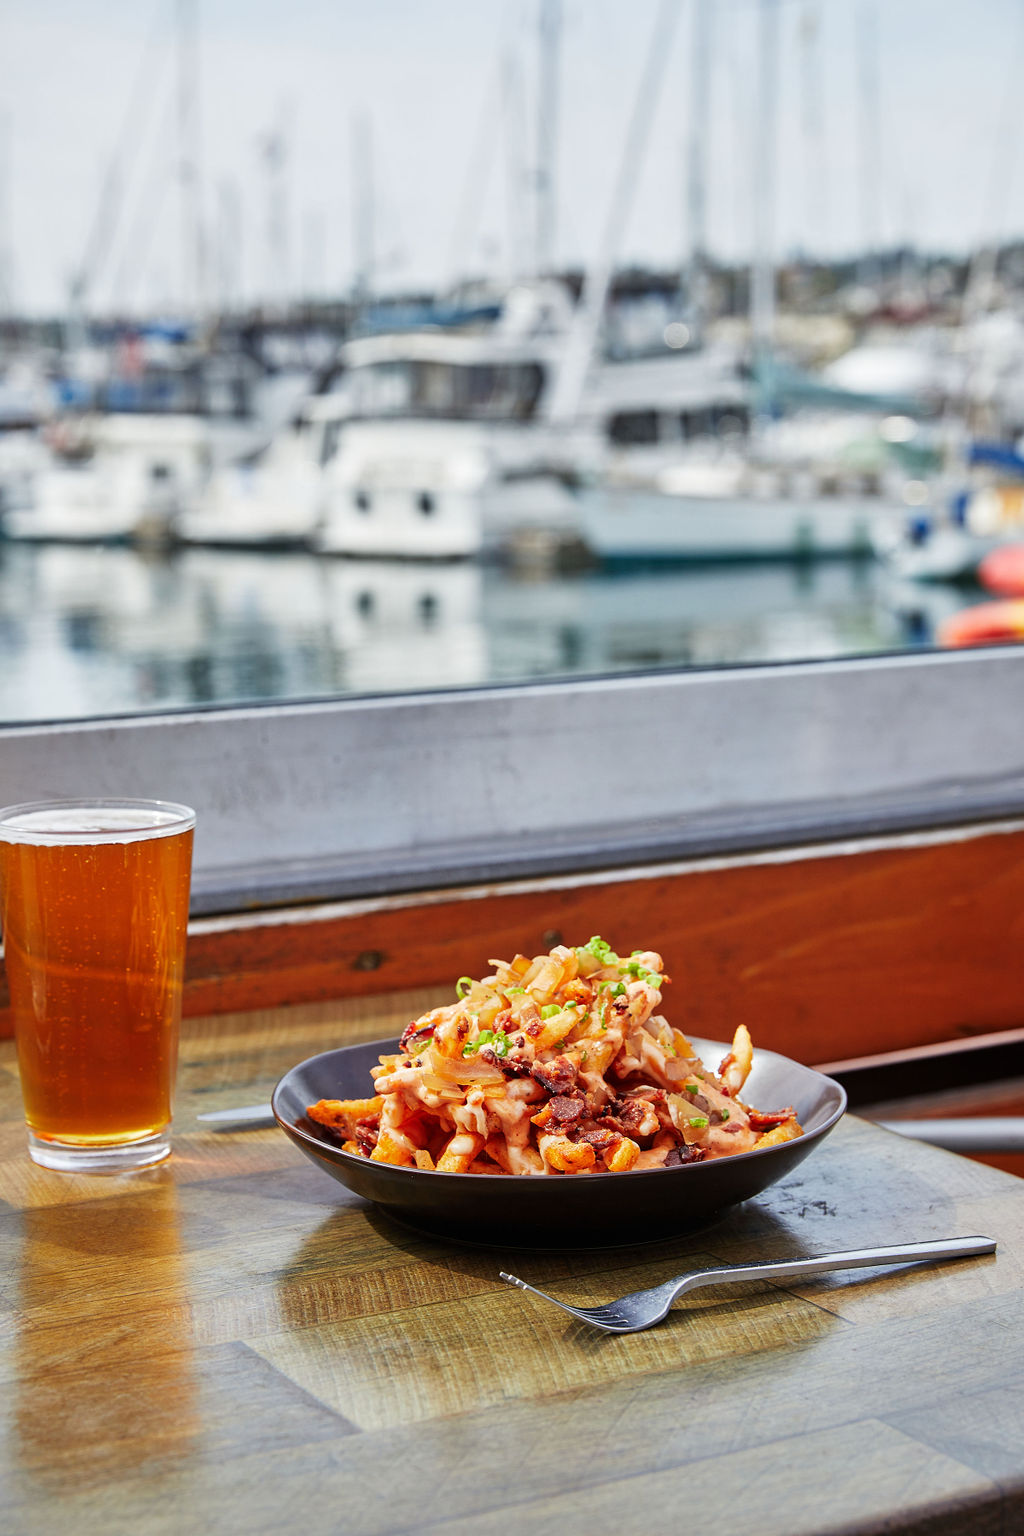 Enjoy a beer and smothered fries at Jimmy's San Diego